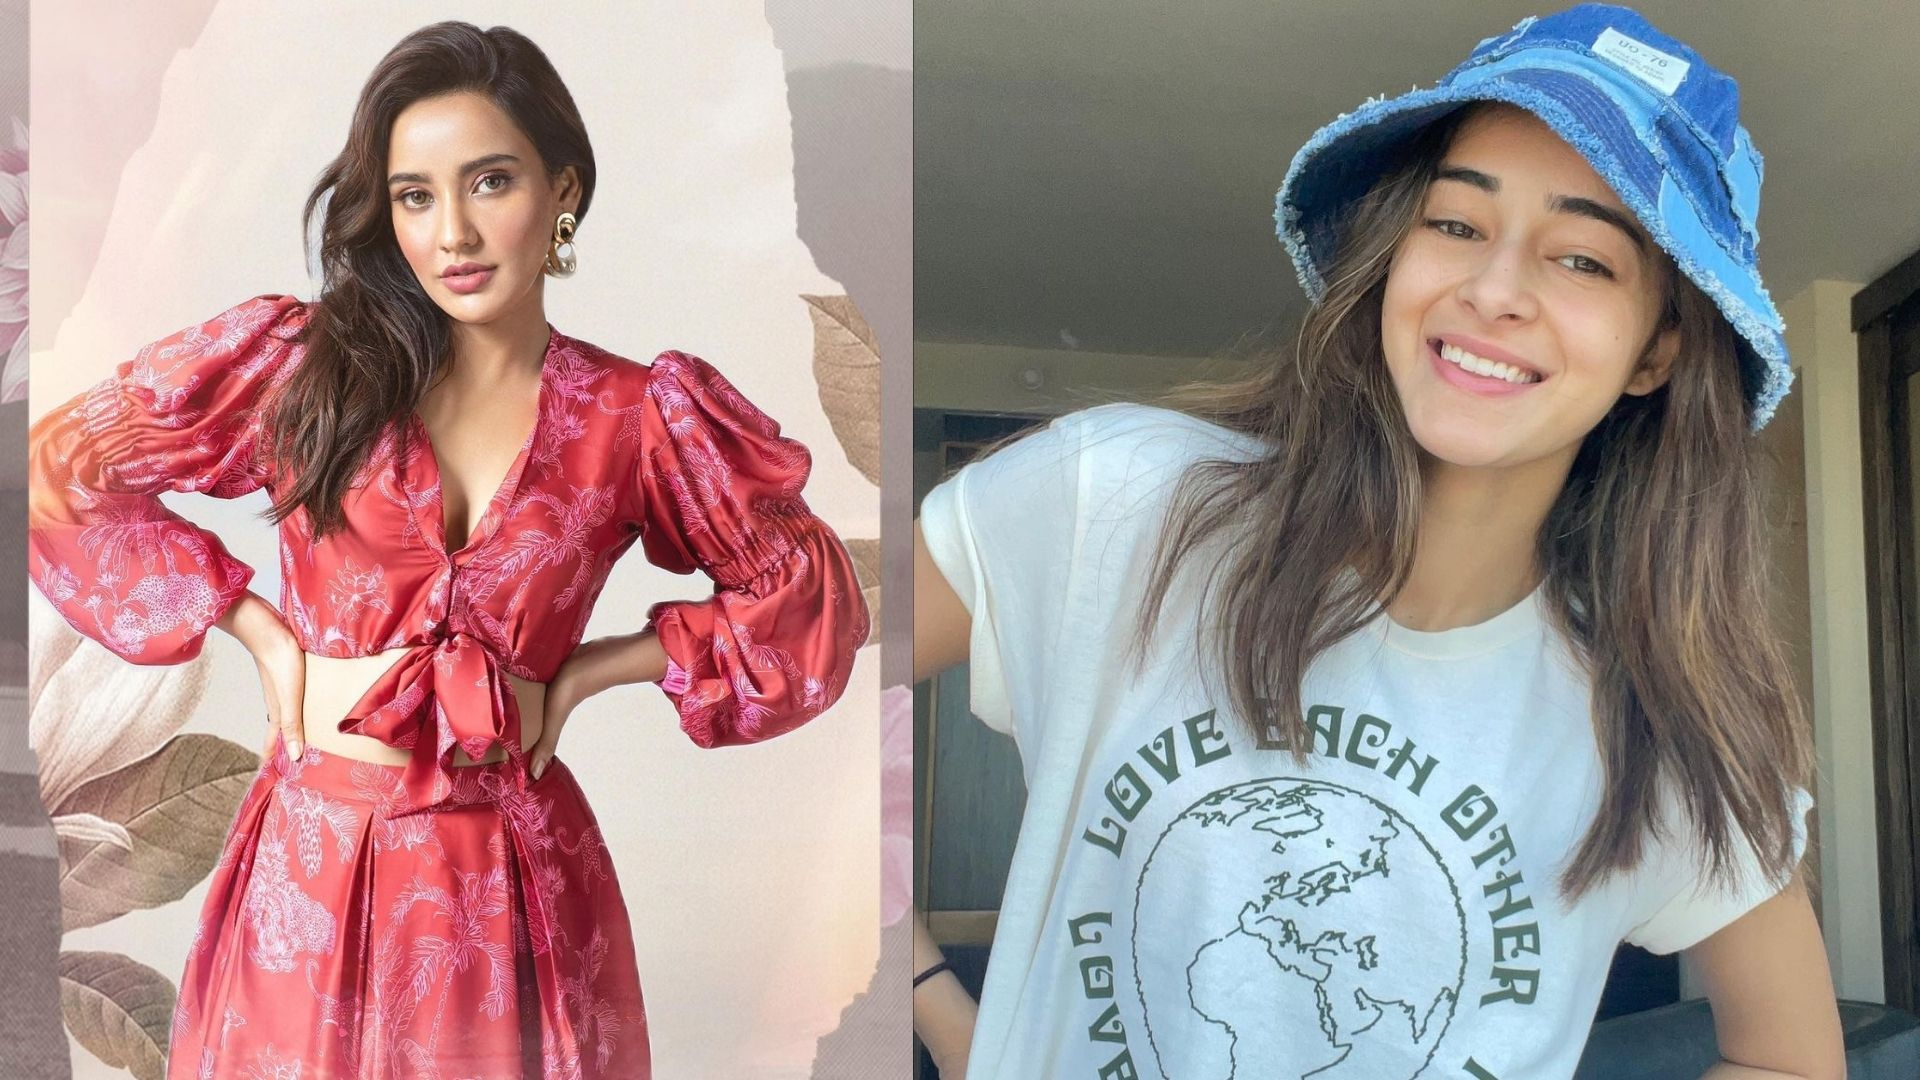 Aafat-E-Ishq: Neha Sharma Makes Shocking Comment About Ananya Panday's Work Amid Aryan Khan Drug Case